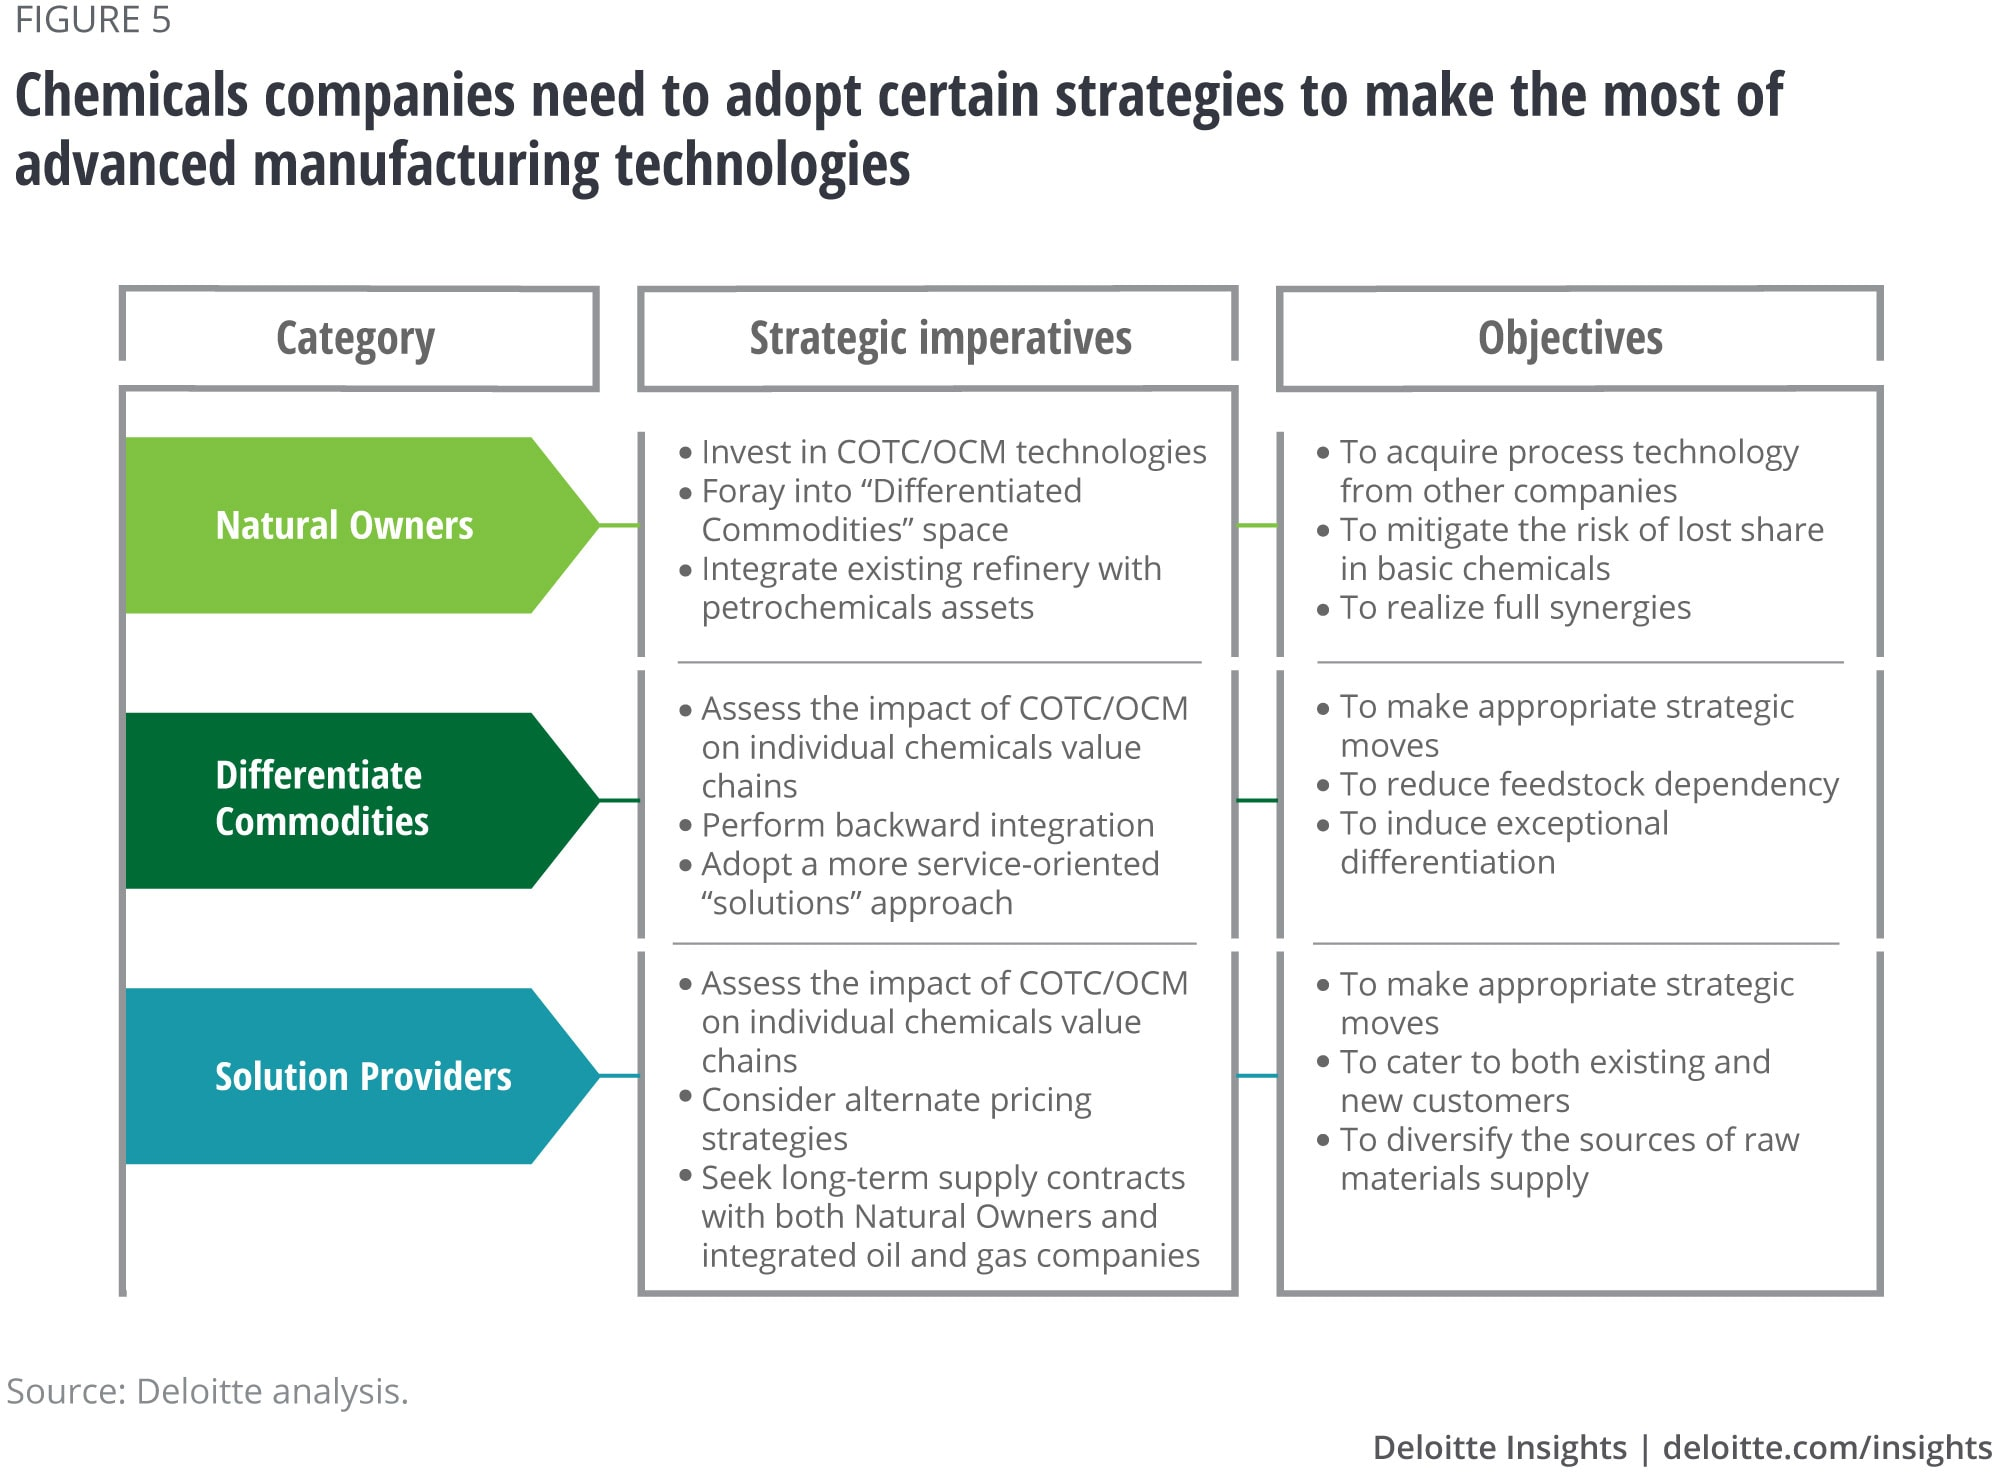 Chemicals companies need to adopt certain strategies to make the most of advanced manufacturing technologies